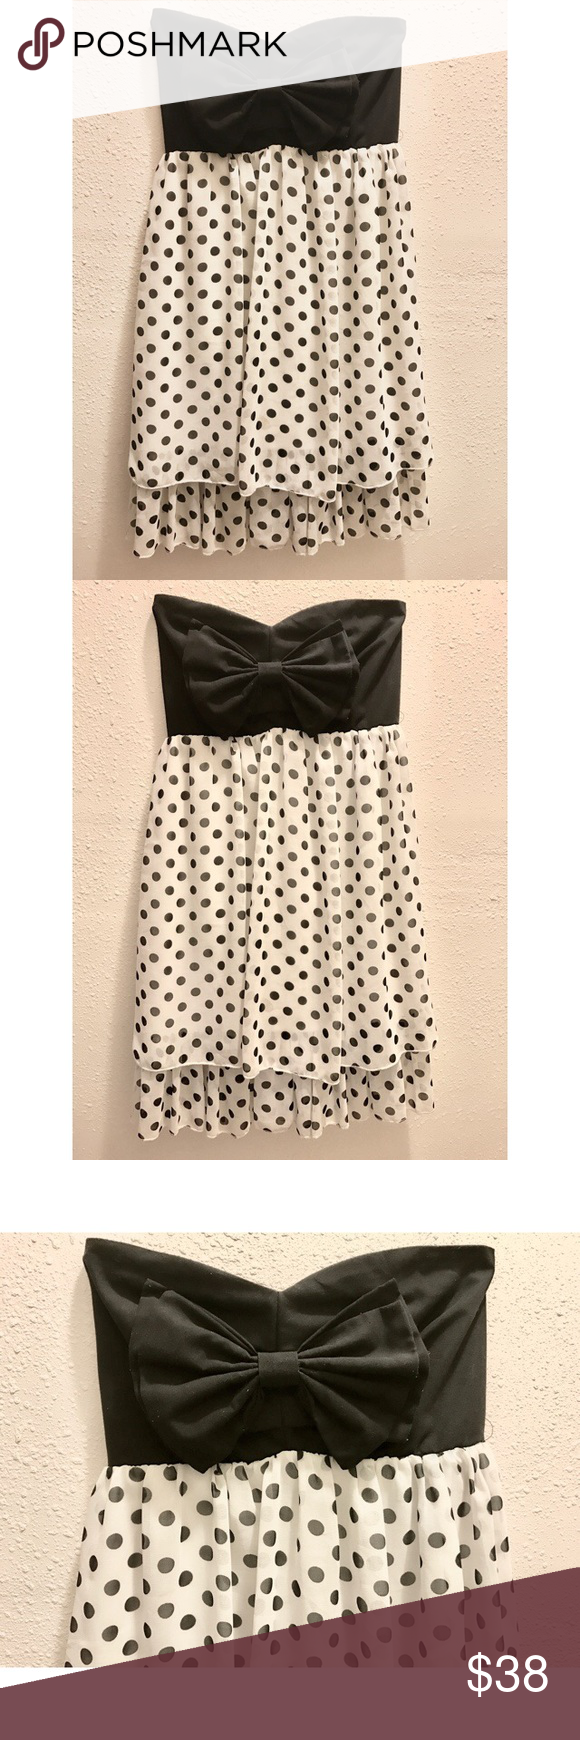 Strapless Bow Dress Beautiful Black Bow Polka Dot Dress. Not sure what brand it is. Abercrombie & Fitch Dresses